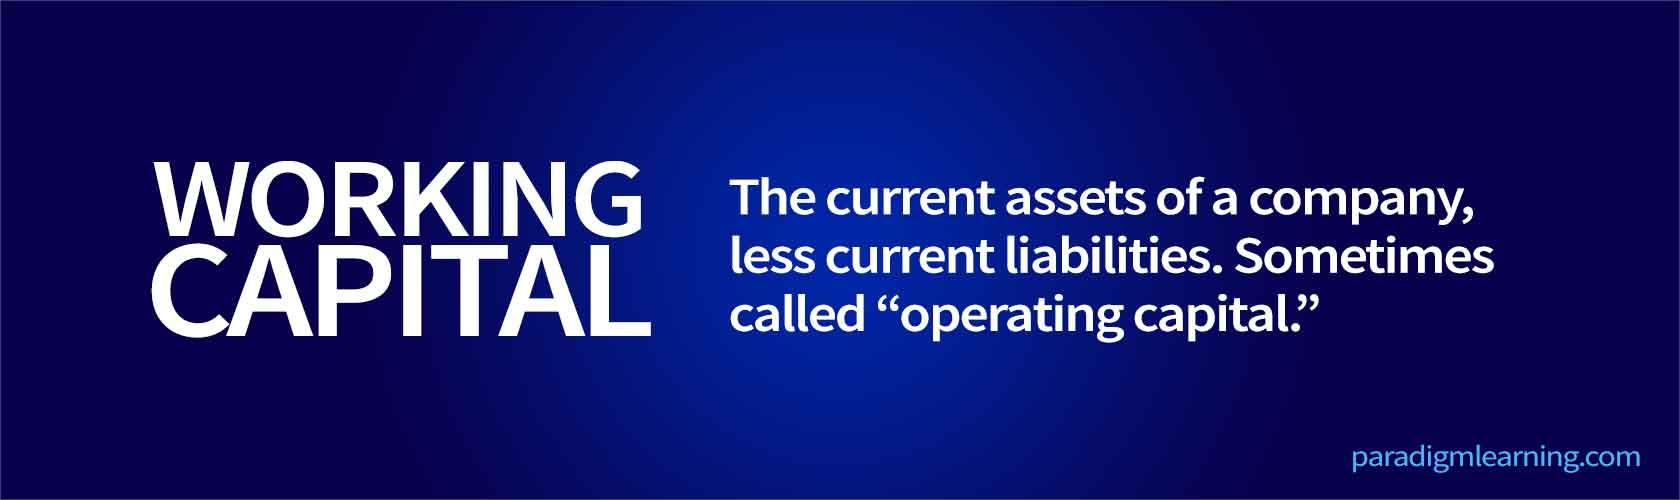 "The current assets of a company, less current liabilities. Sometimes called ""operating capital."""